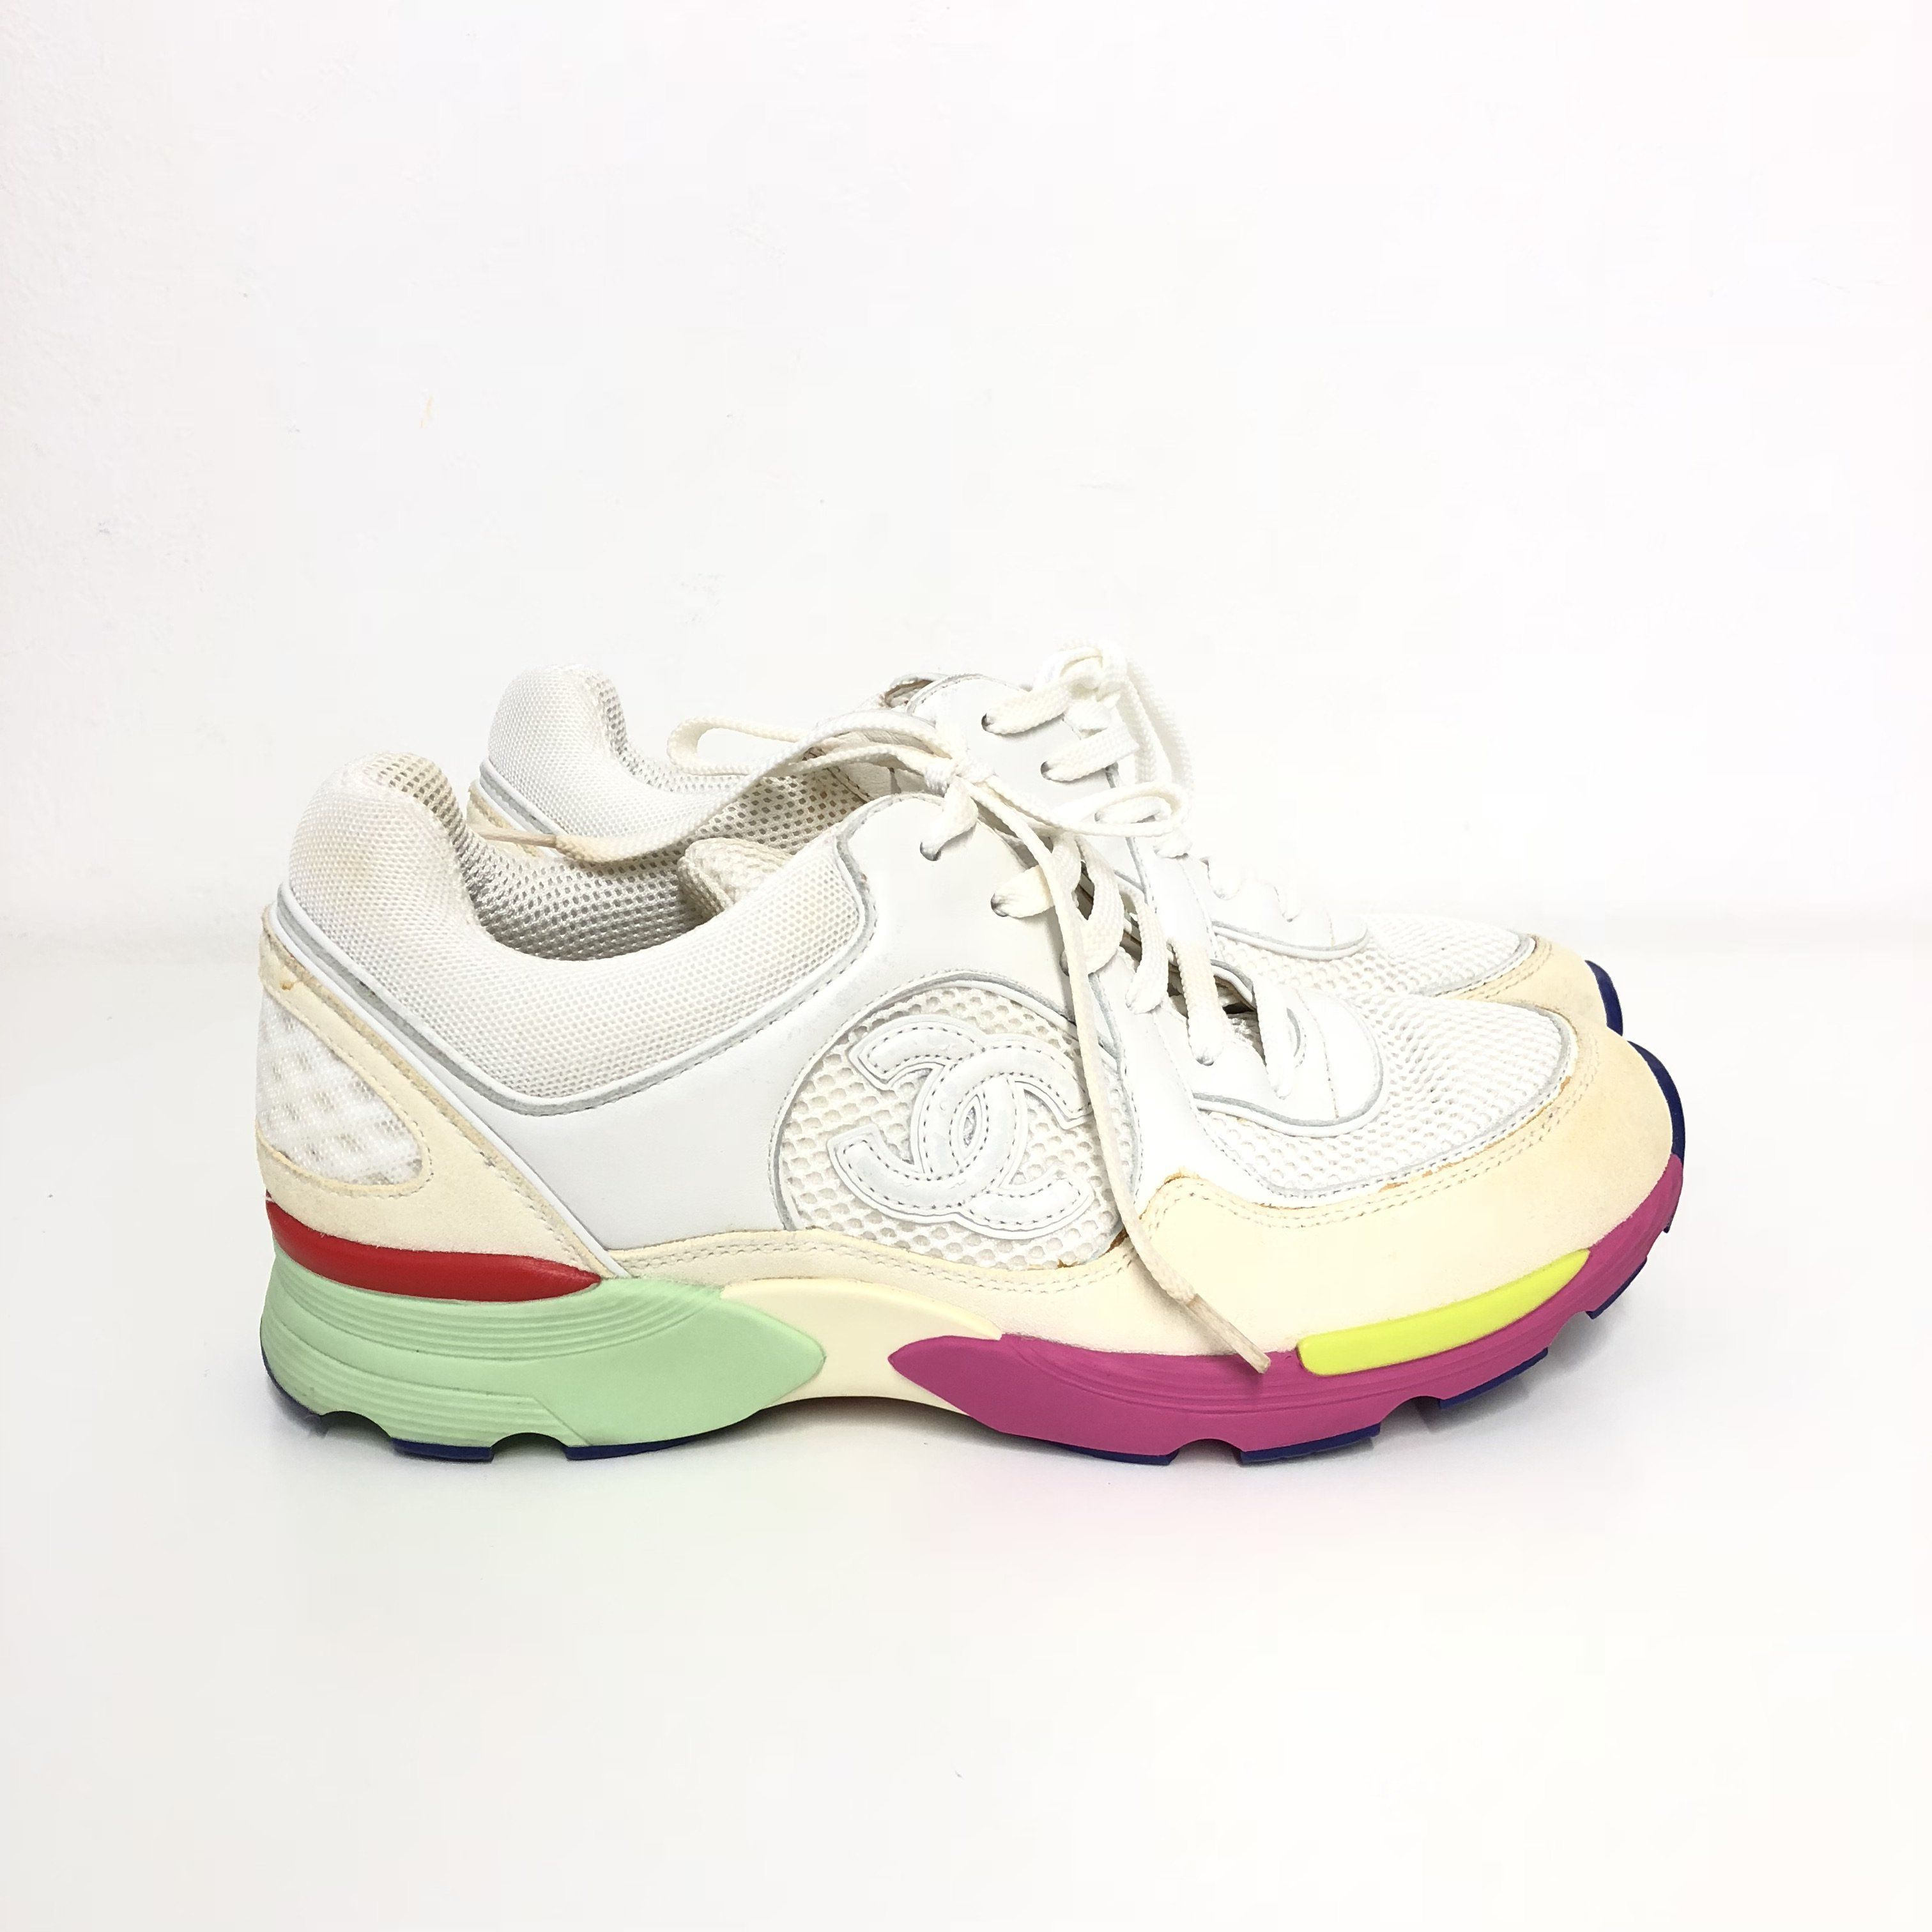 Chanel White Mesh And Leather CC Multicolor Sole Lace Up Sneakers